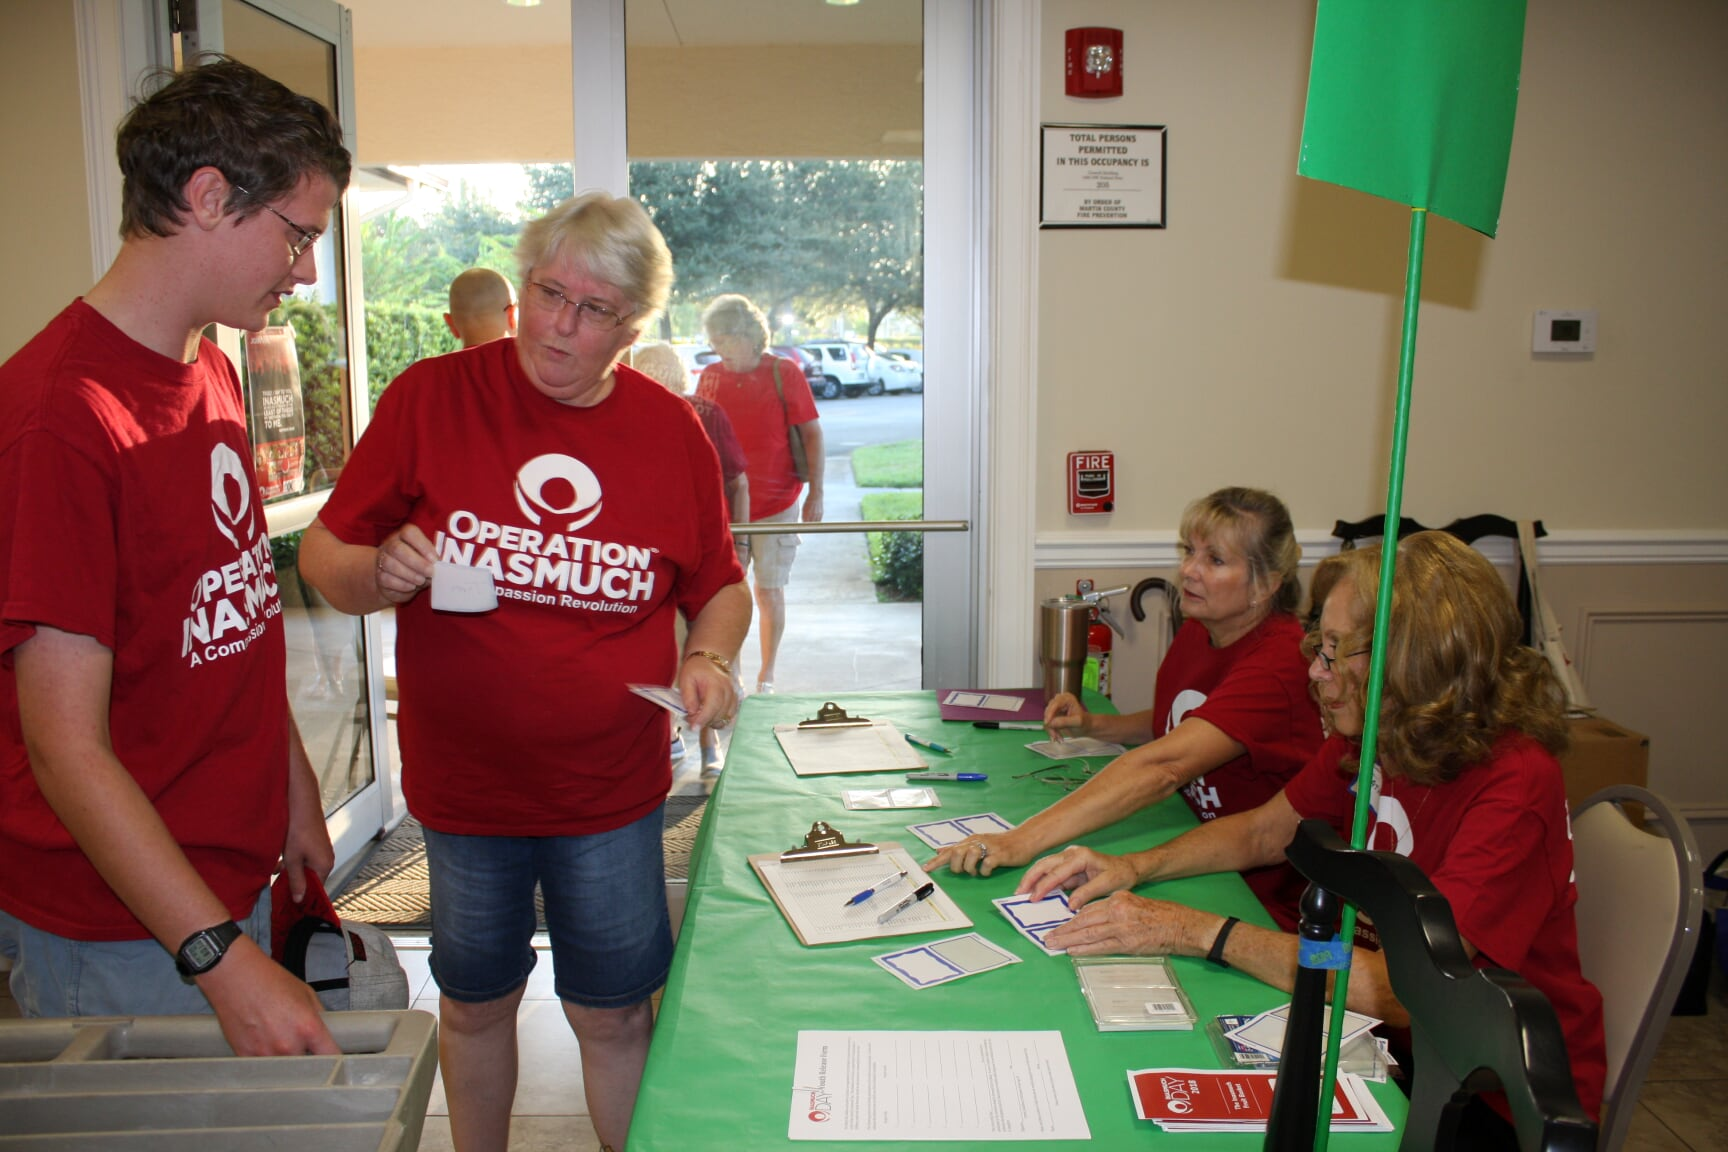 local-missions-with-north-stuart-baptist-church-martin-county-30.JPG